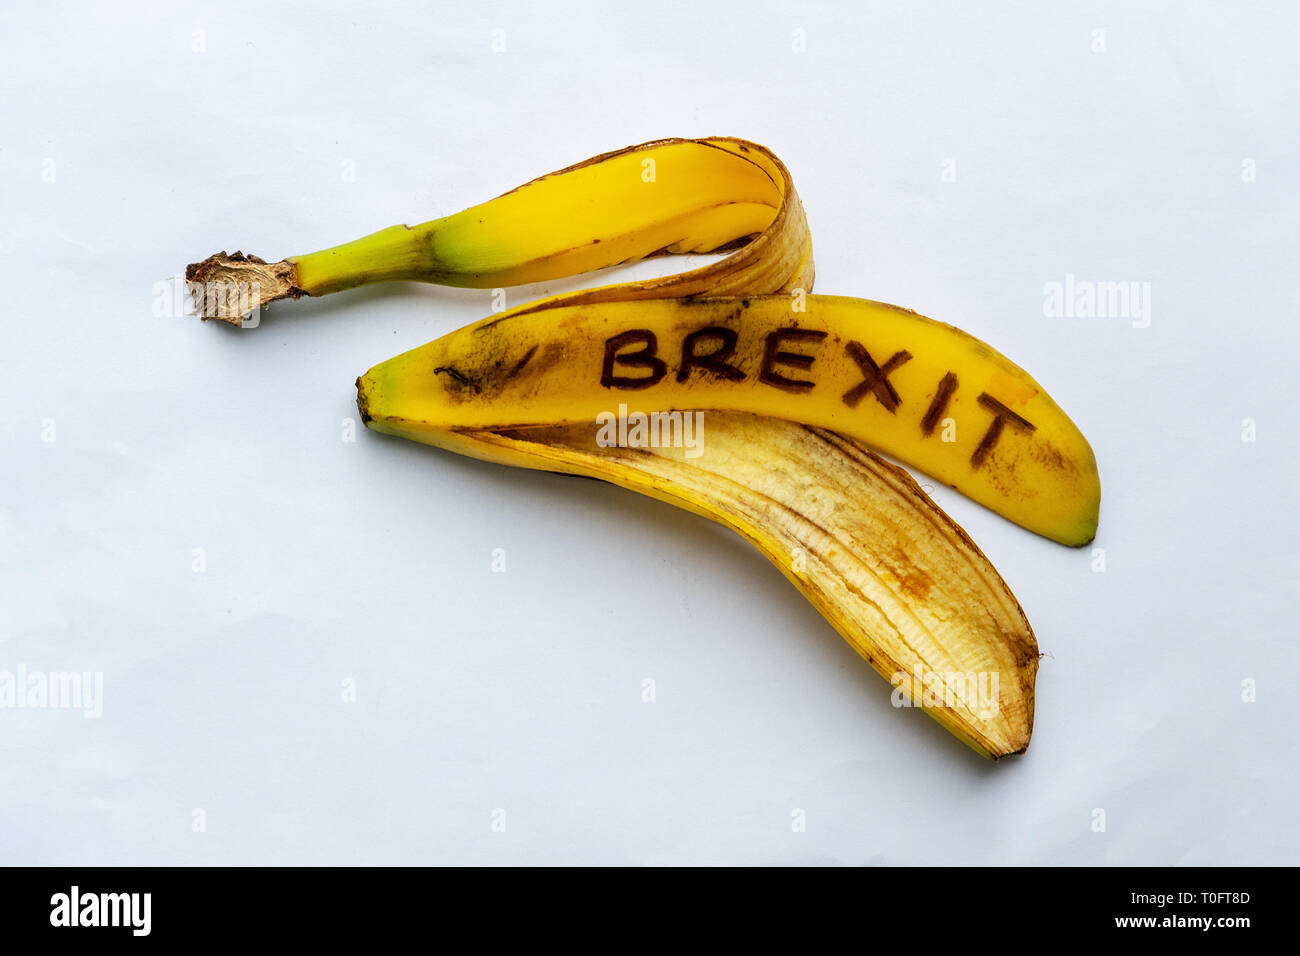 A Banana Skin, representing the way Brexit has been dealt with. Mrs Mays deal which has failed to get through Parliament, and a possible extension. - Stock Image